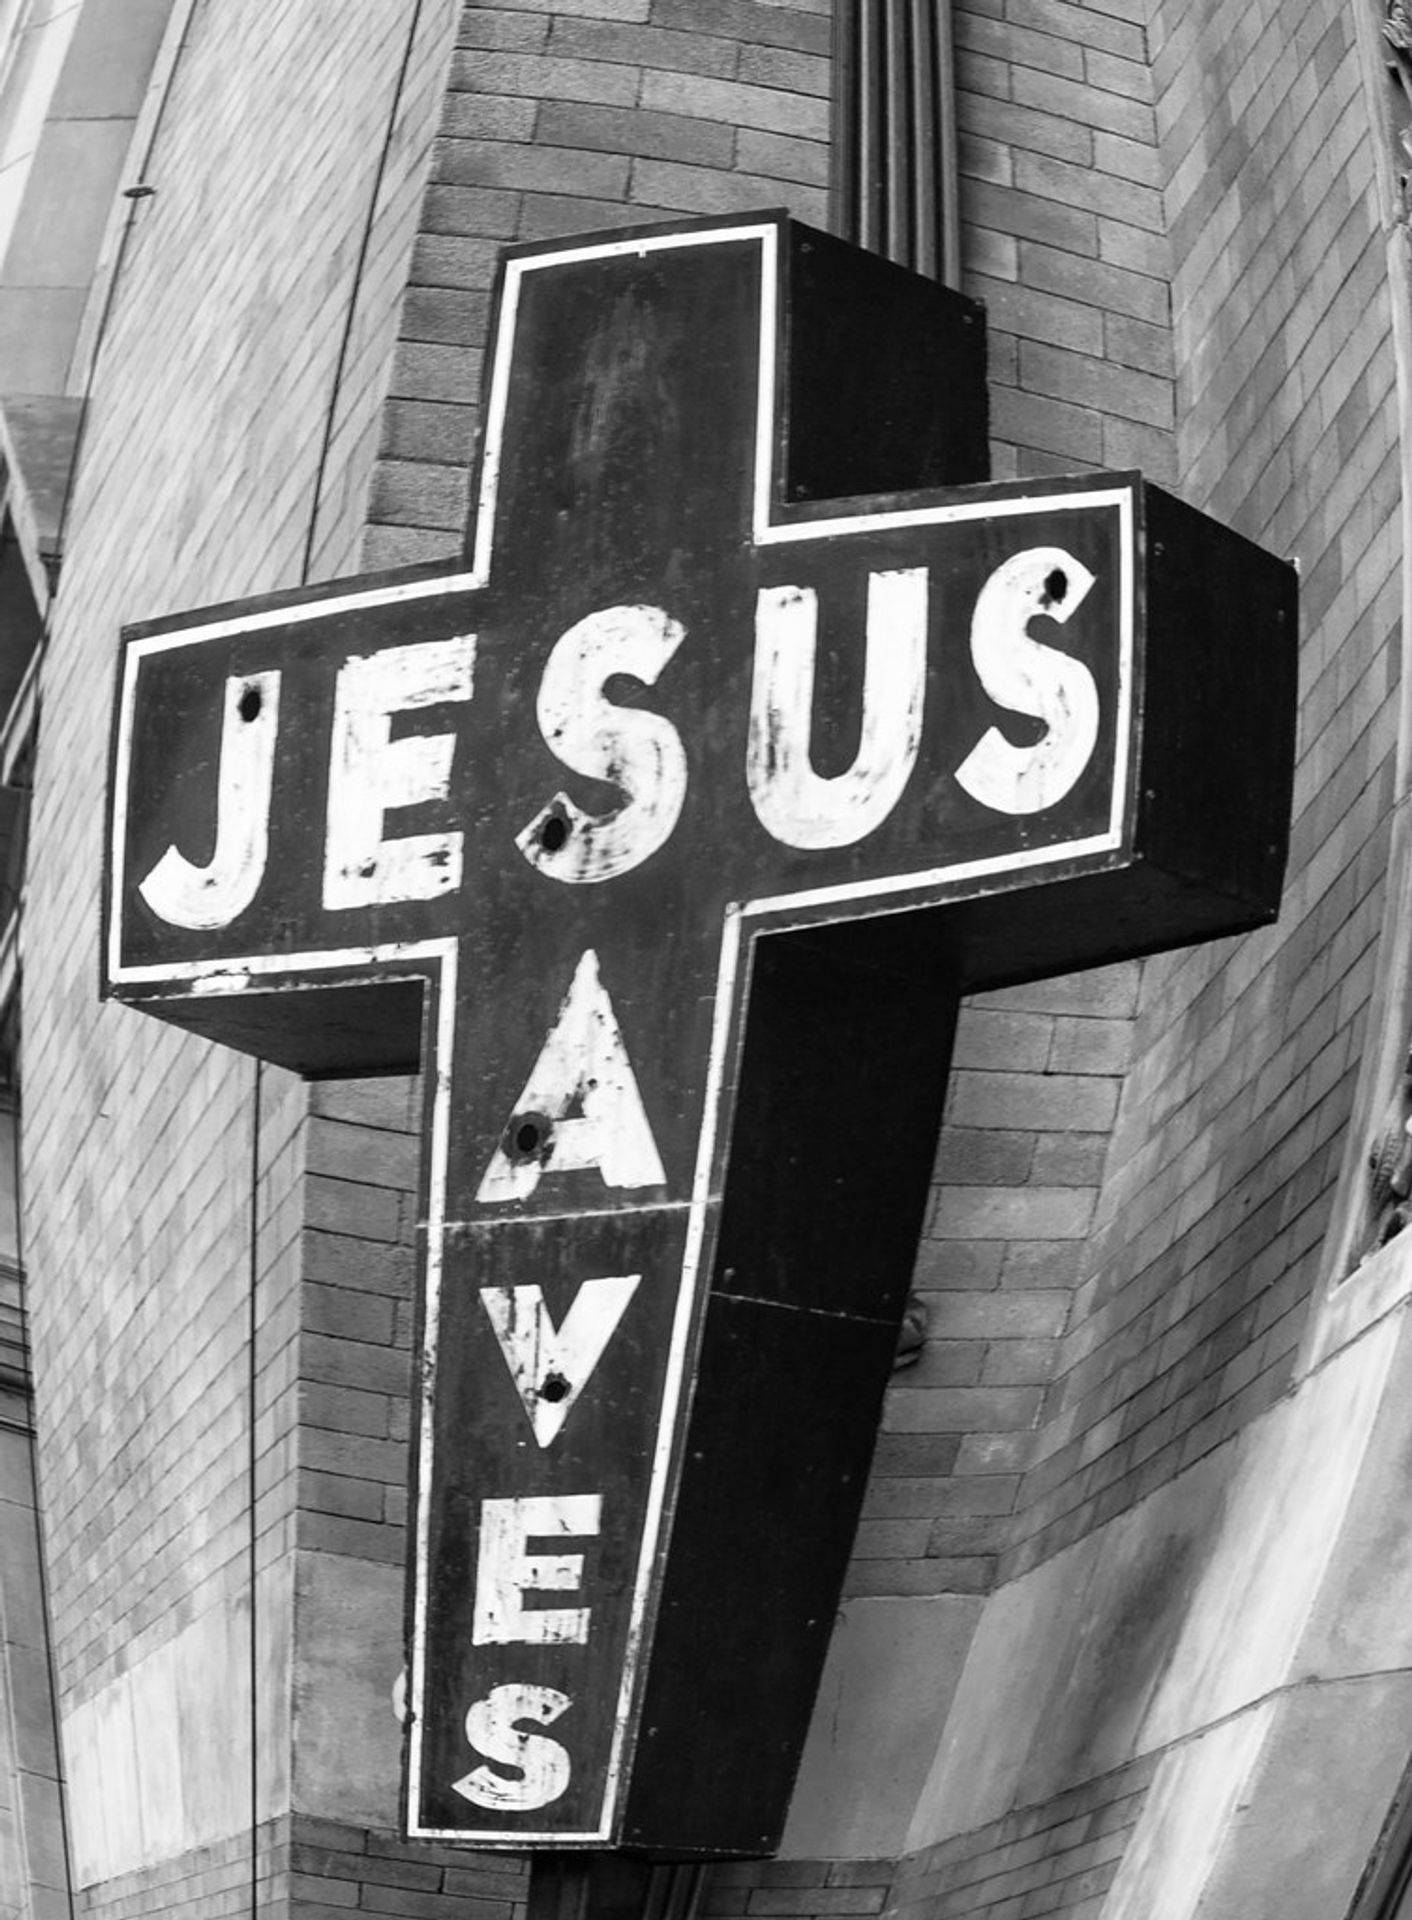 Jesus saves, come experience Him